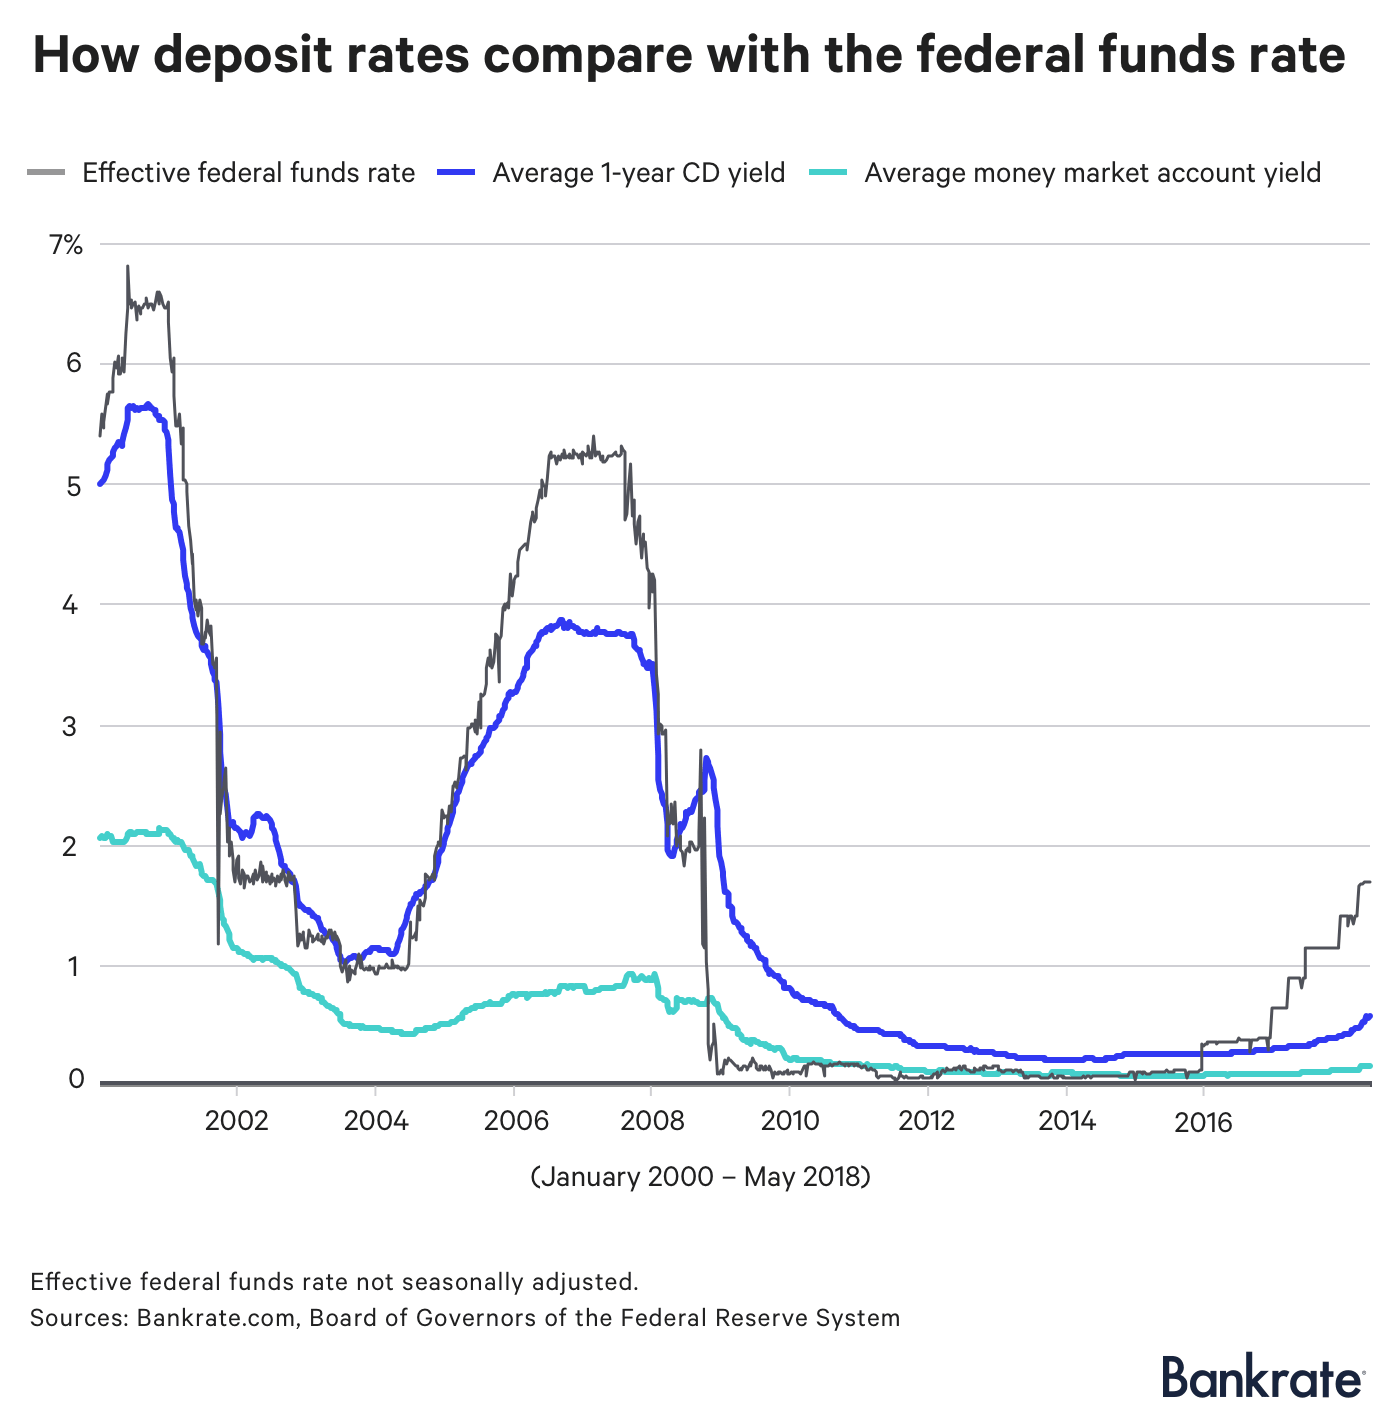 Chart: How deposit rates compare with the federal funds rate (since 2000)